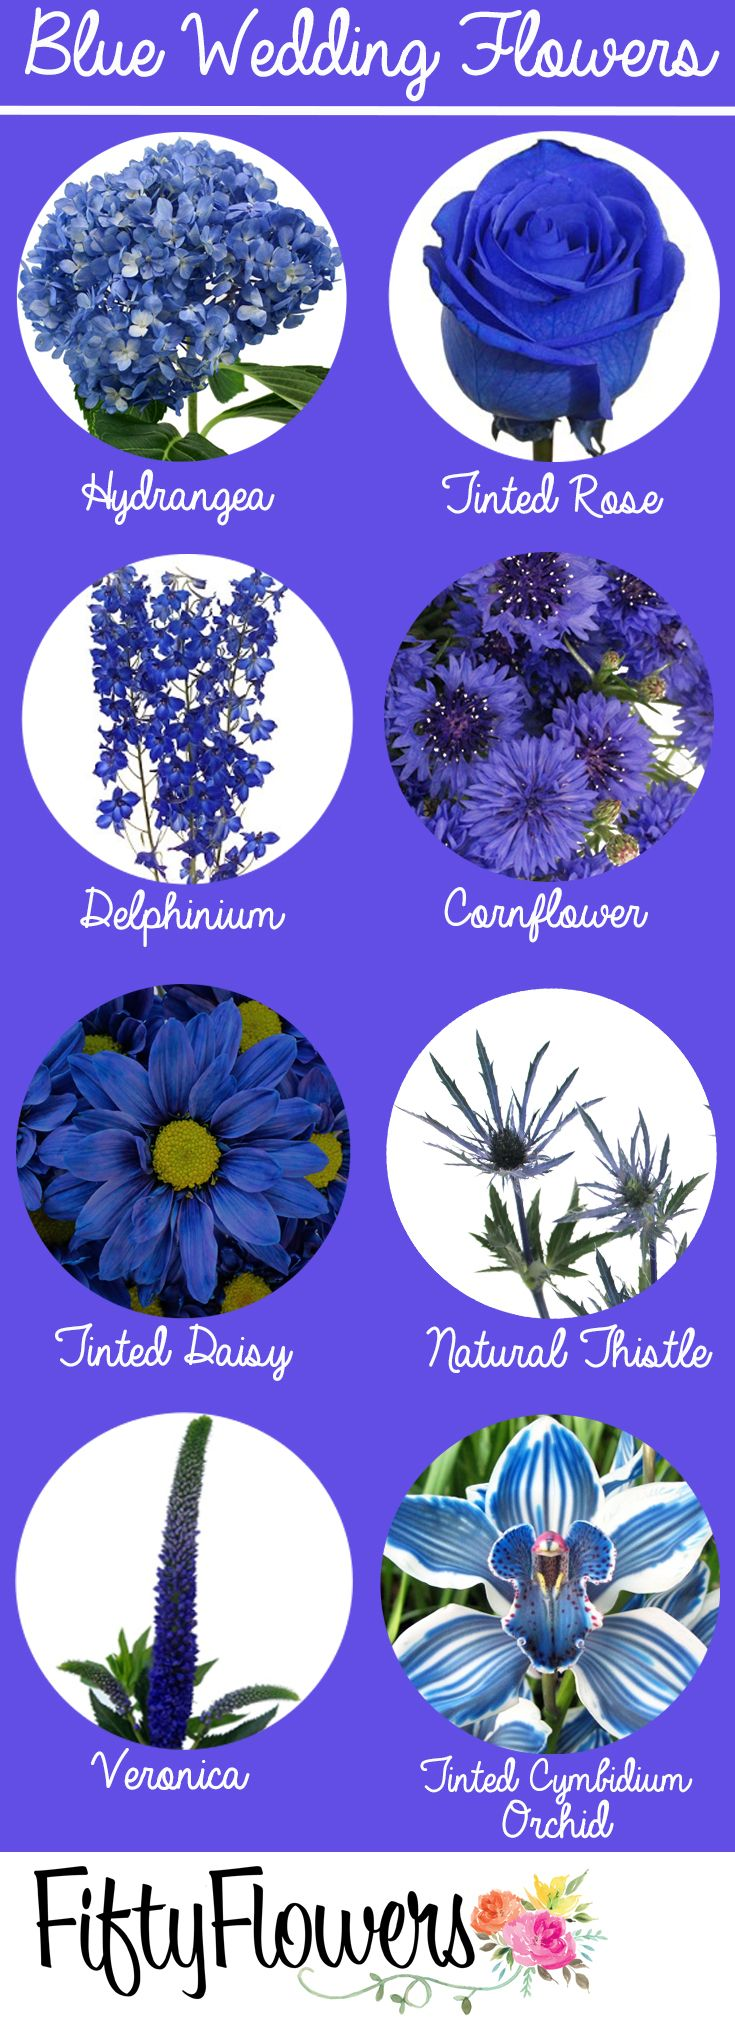 Find your something blue at fiftyflowers flower names find your something blue at fiftyflowers flower names reference pinterest wedding flowers wedding and blue wedding flowers izmirmasajfo